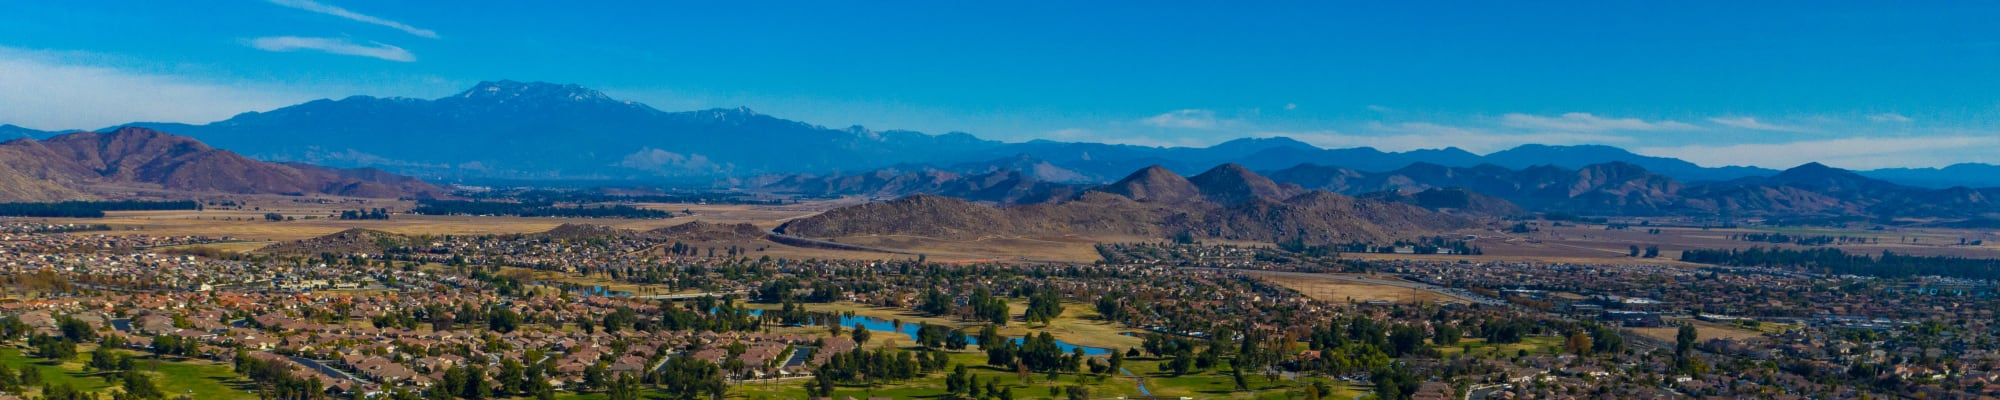 Schedule a tour of WellQuest of Menifee Lakes in Menifee, California